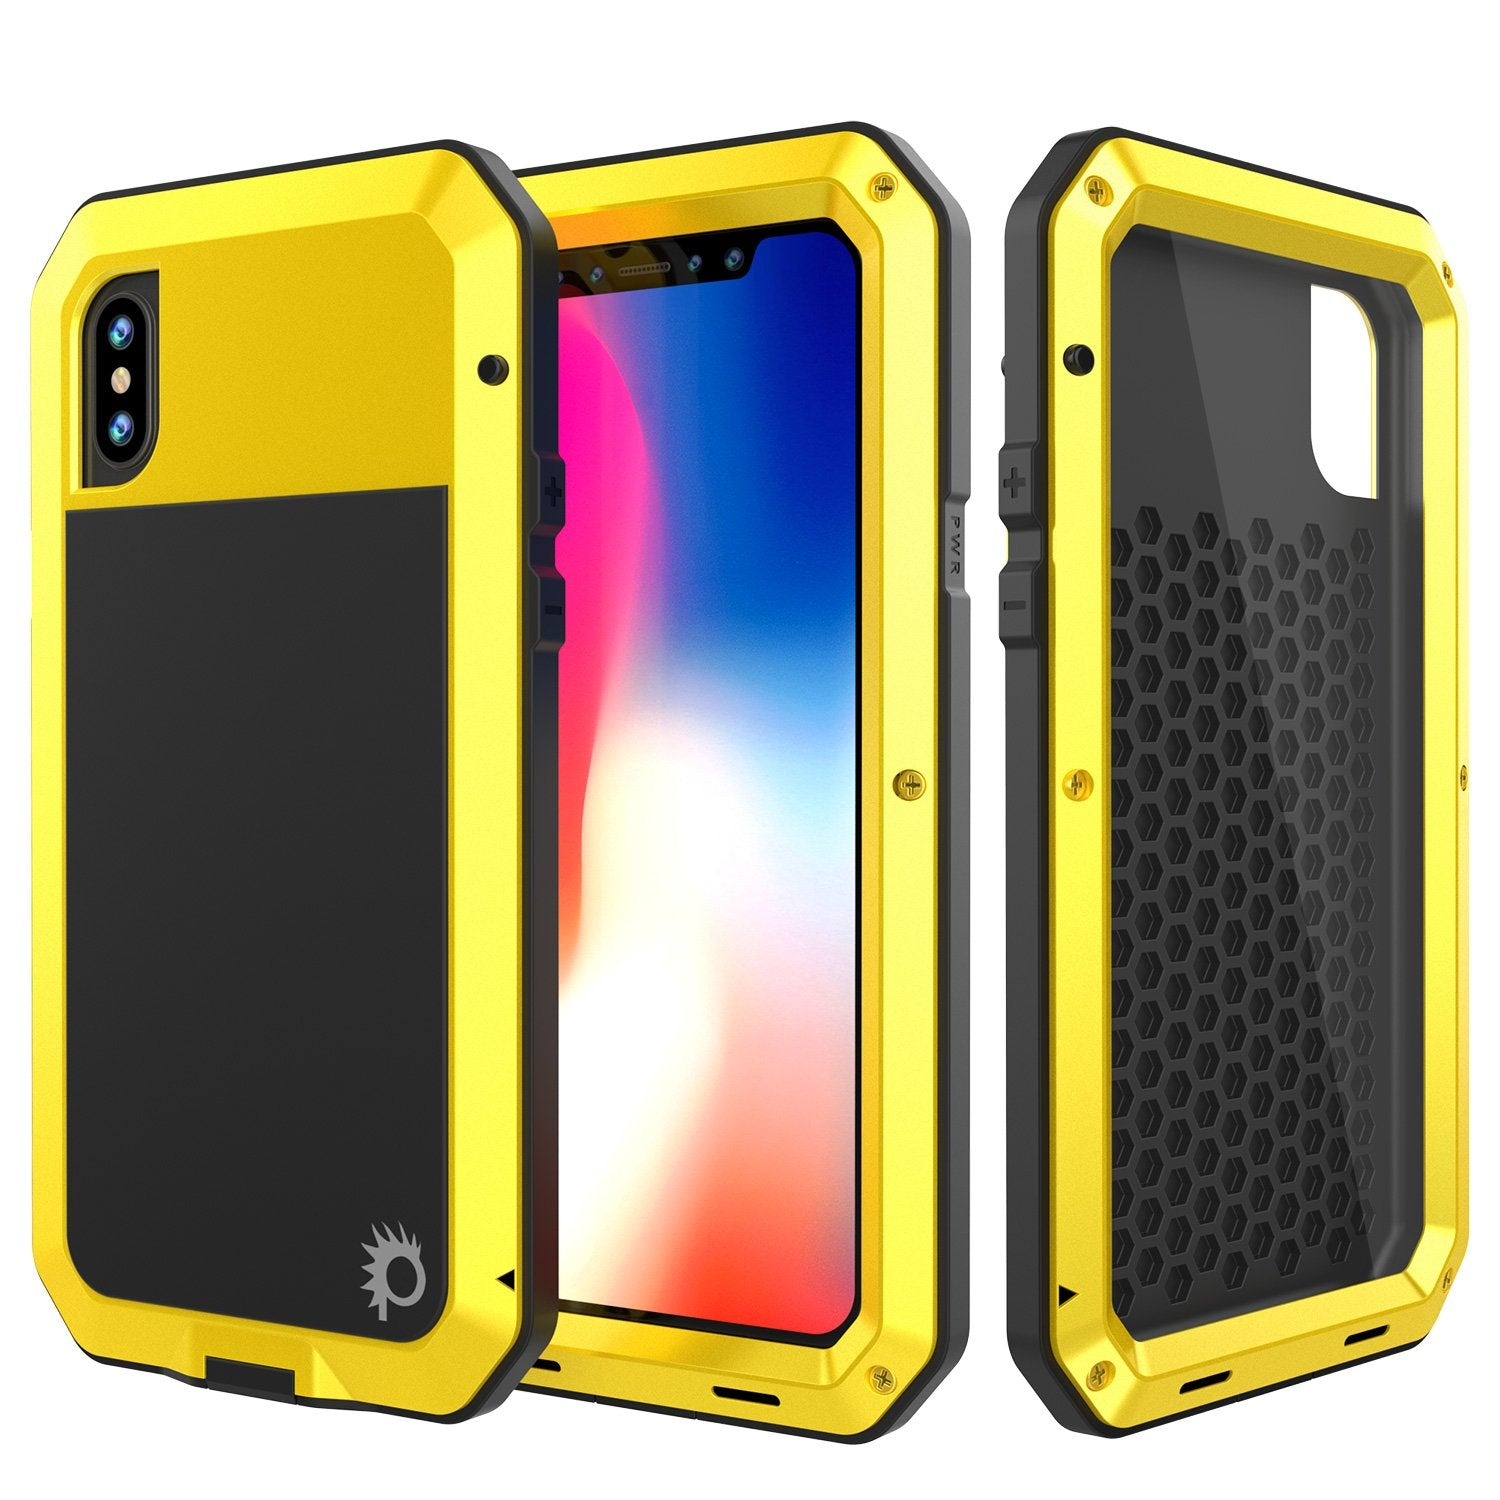 iPhone X Metal Case, Heavy Duty Military Grade Rugged Armor Cover [shock proof] Hybrid Full Body Hard Aluminum & TPU Design [non slip] W/ Prime Drop Protection for Apple iPhone 10 [Neon]